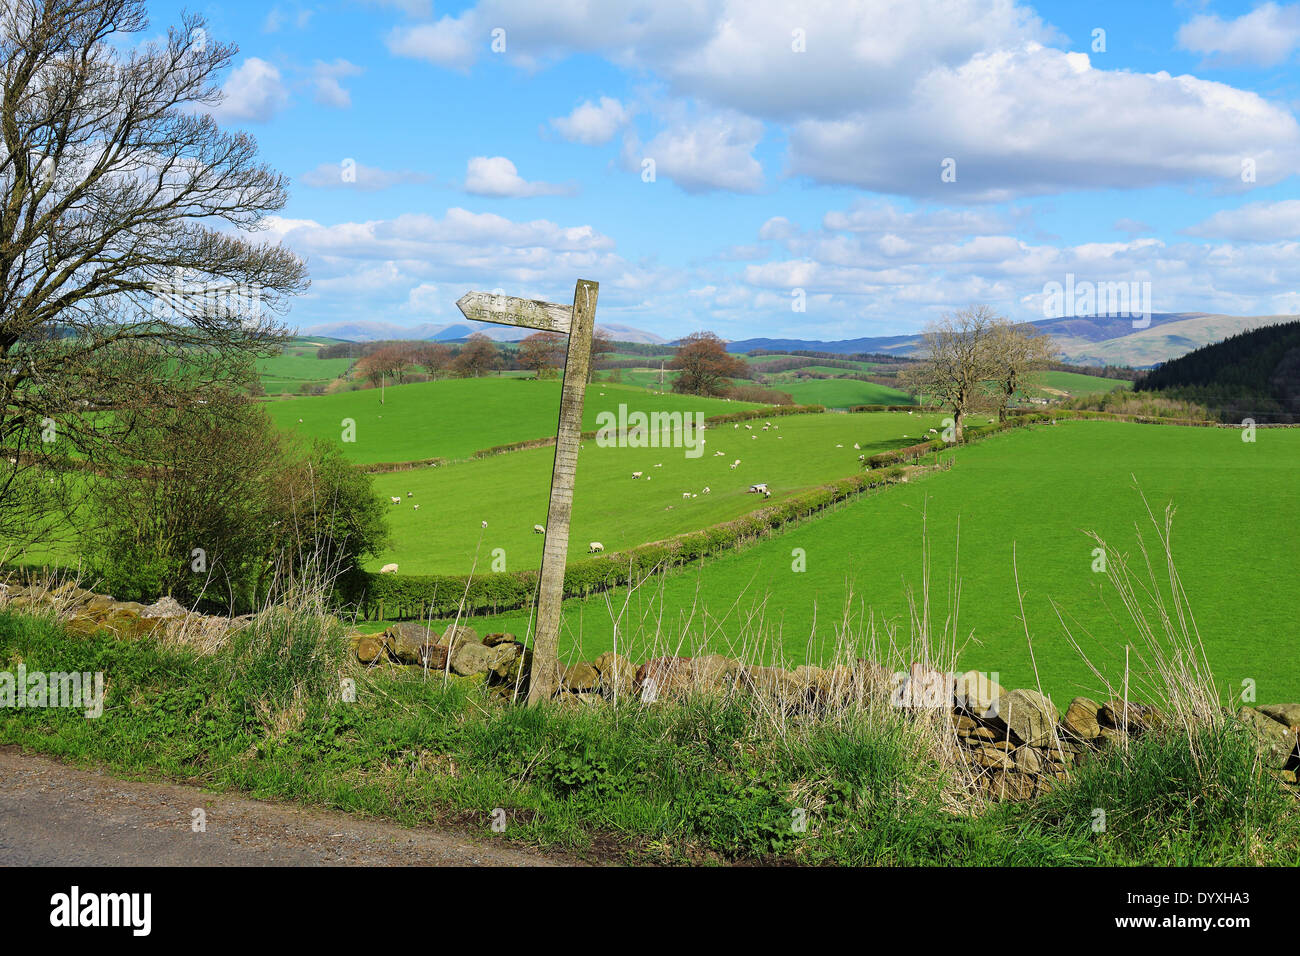 A Rural Landscape in Cumbria with signpost and grazing sheep in the distance - Stock Image